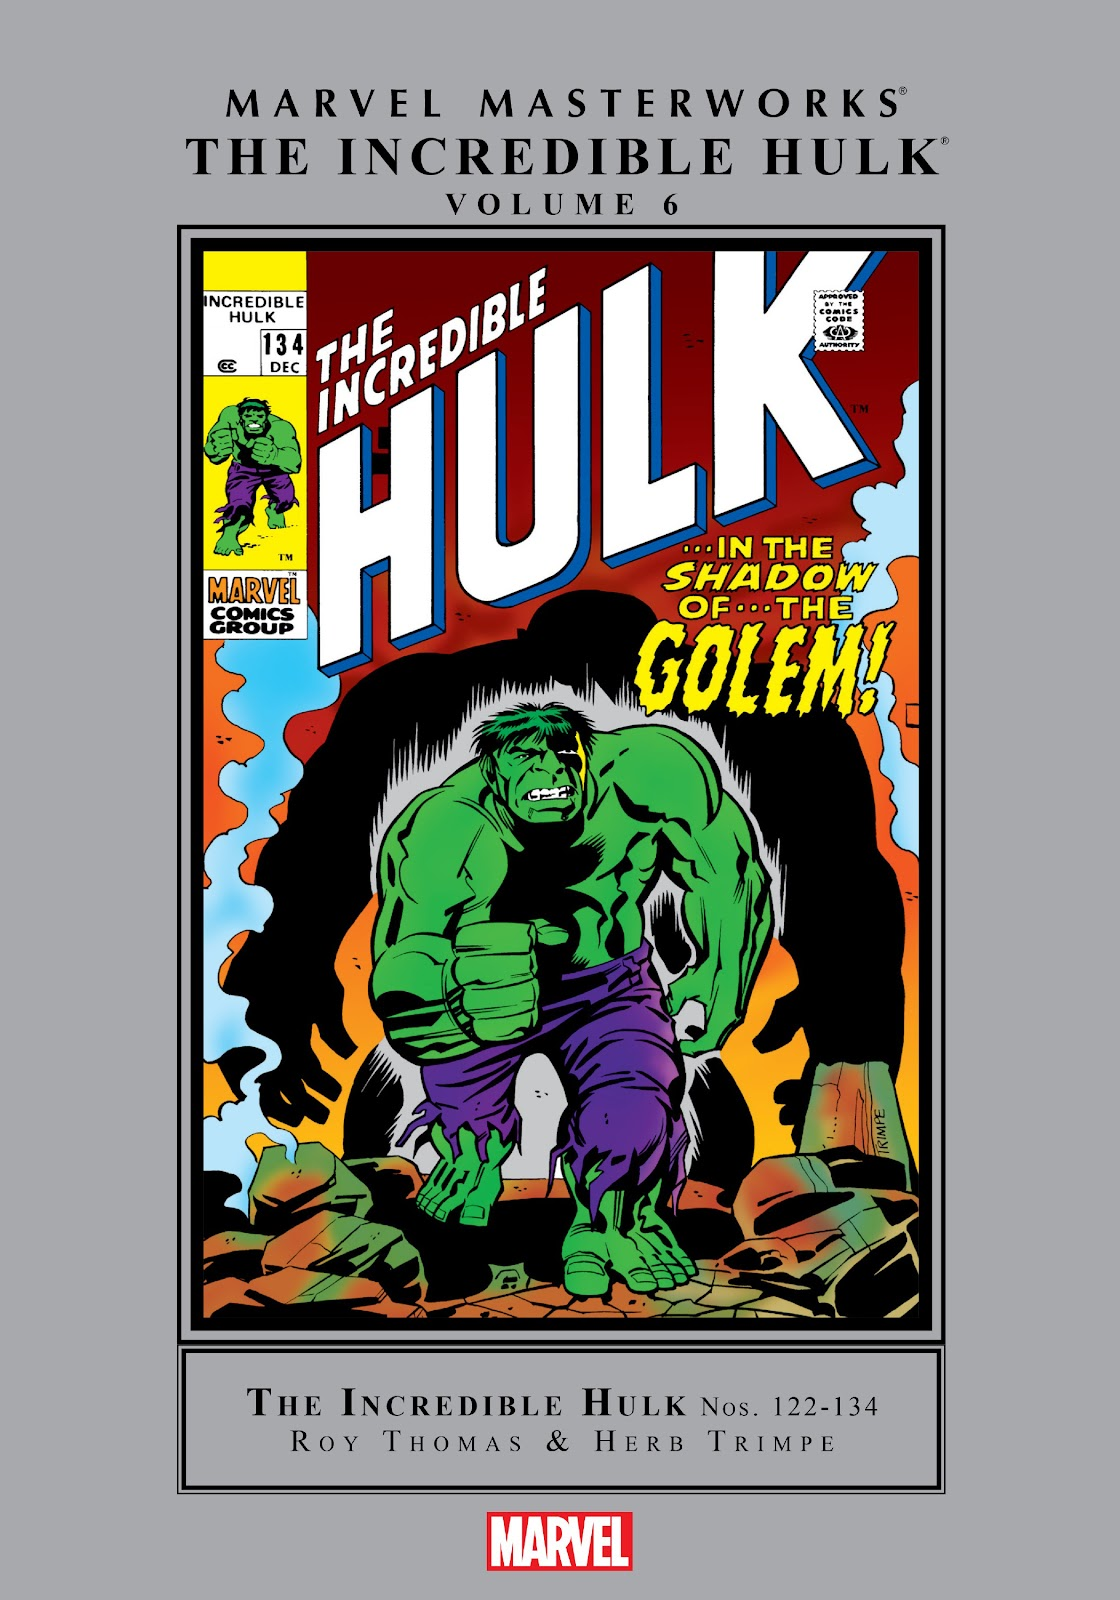 Read online Marvel Masterworks: The Incredible Hulk comic -  Issue # TPB 6 (Part 1) - 1